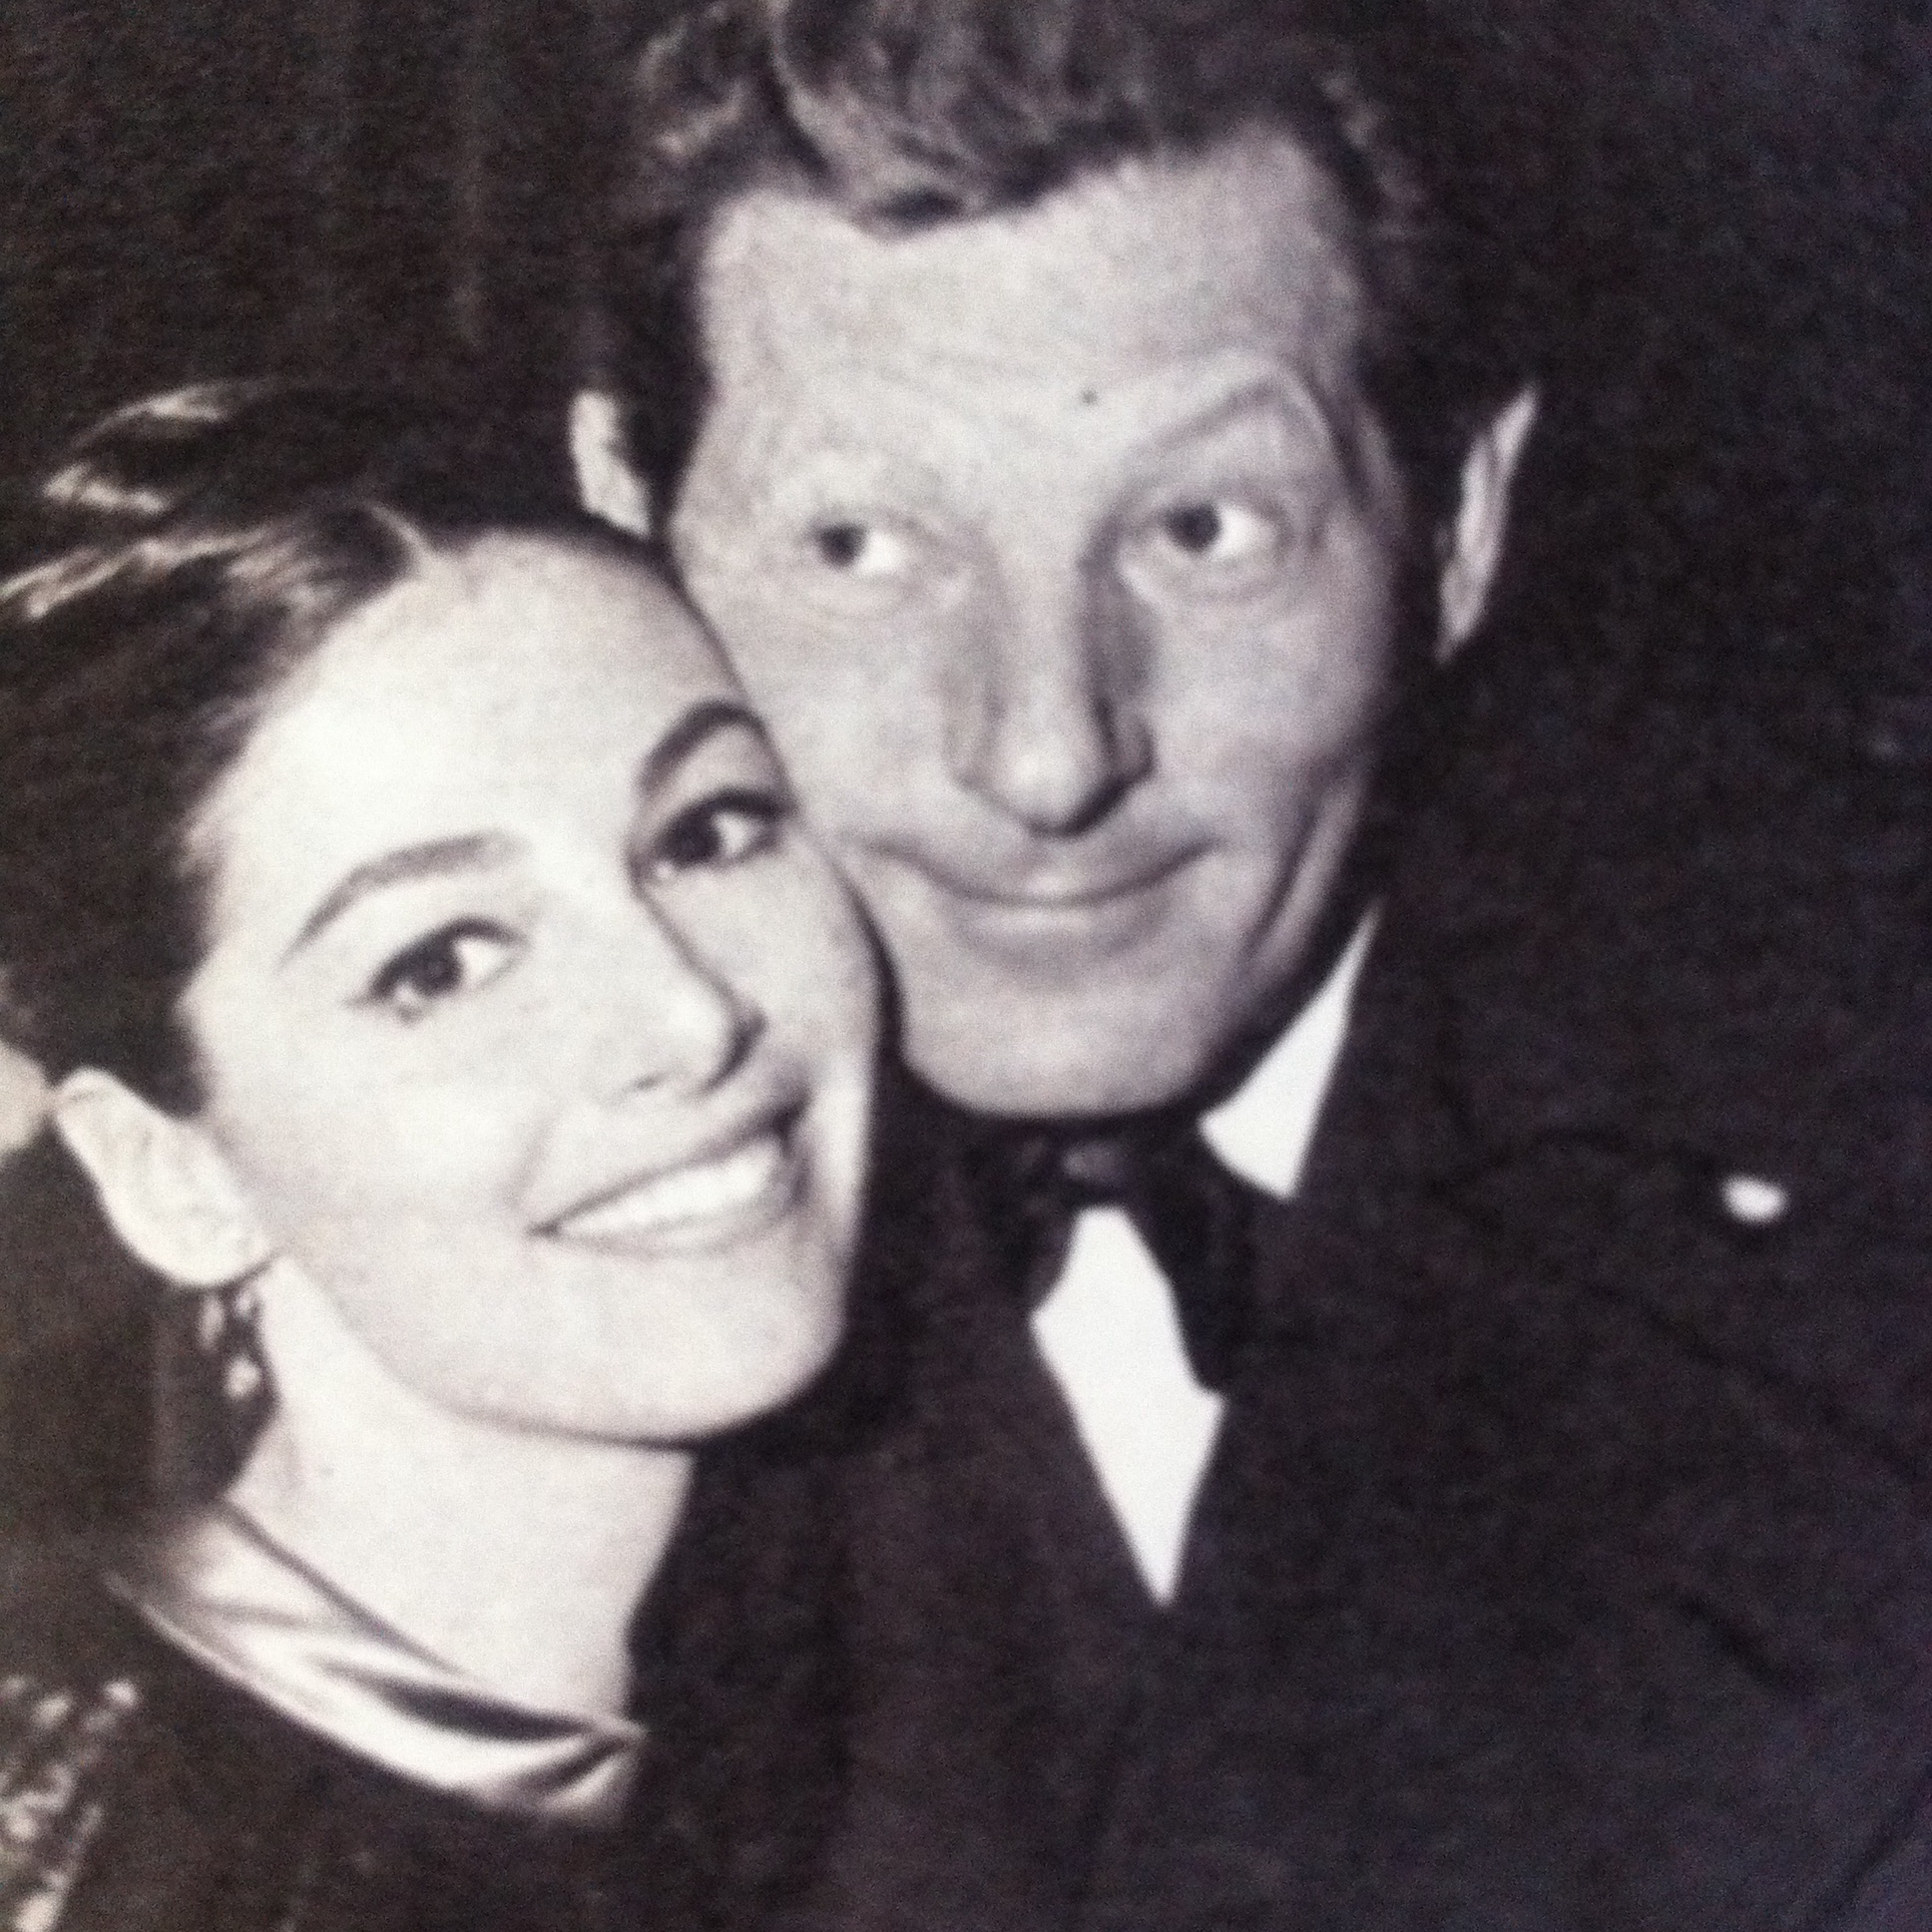 Pier Angeli and Danny Kaye in Merry Andrew (1958)